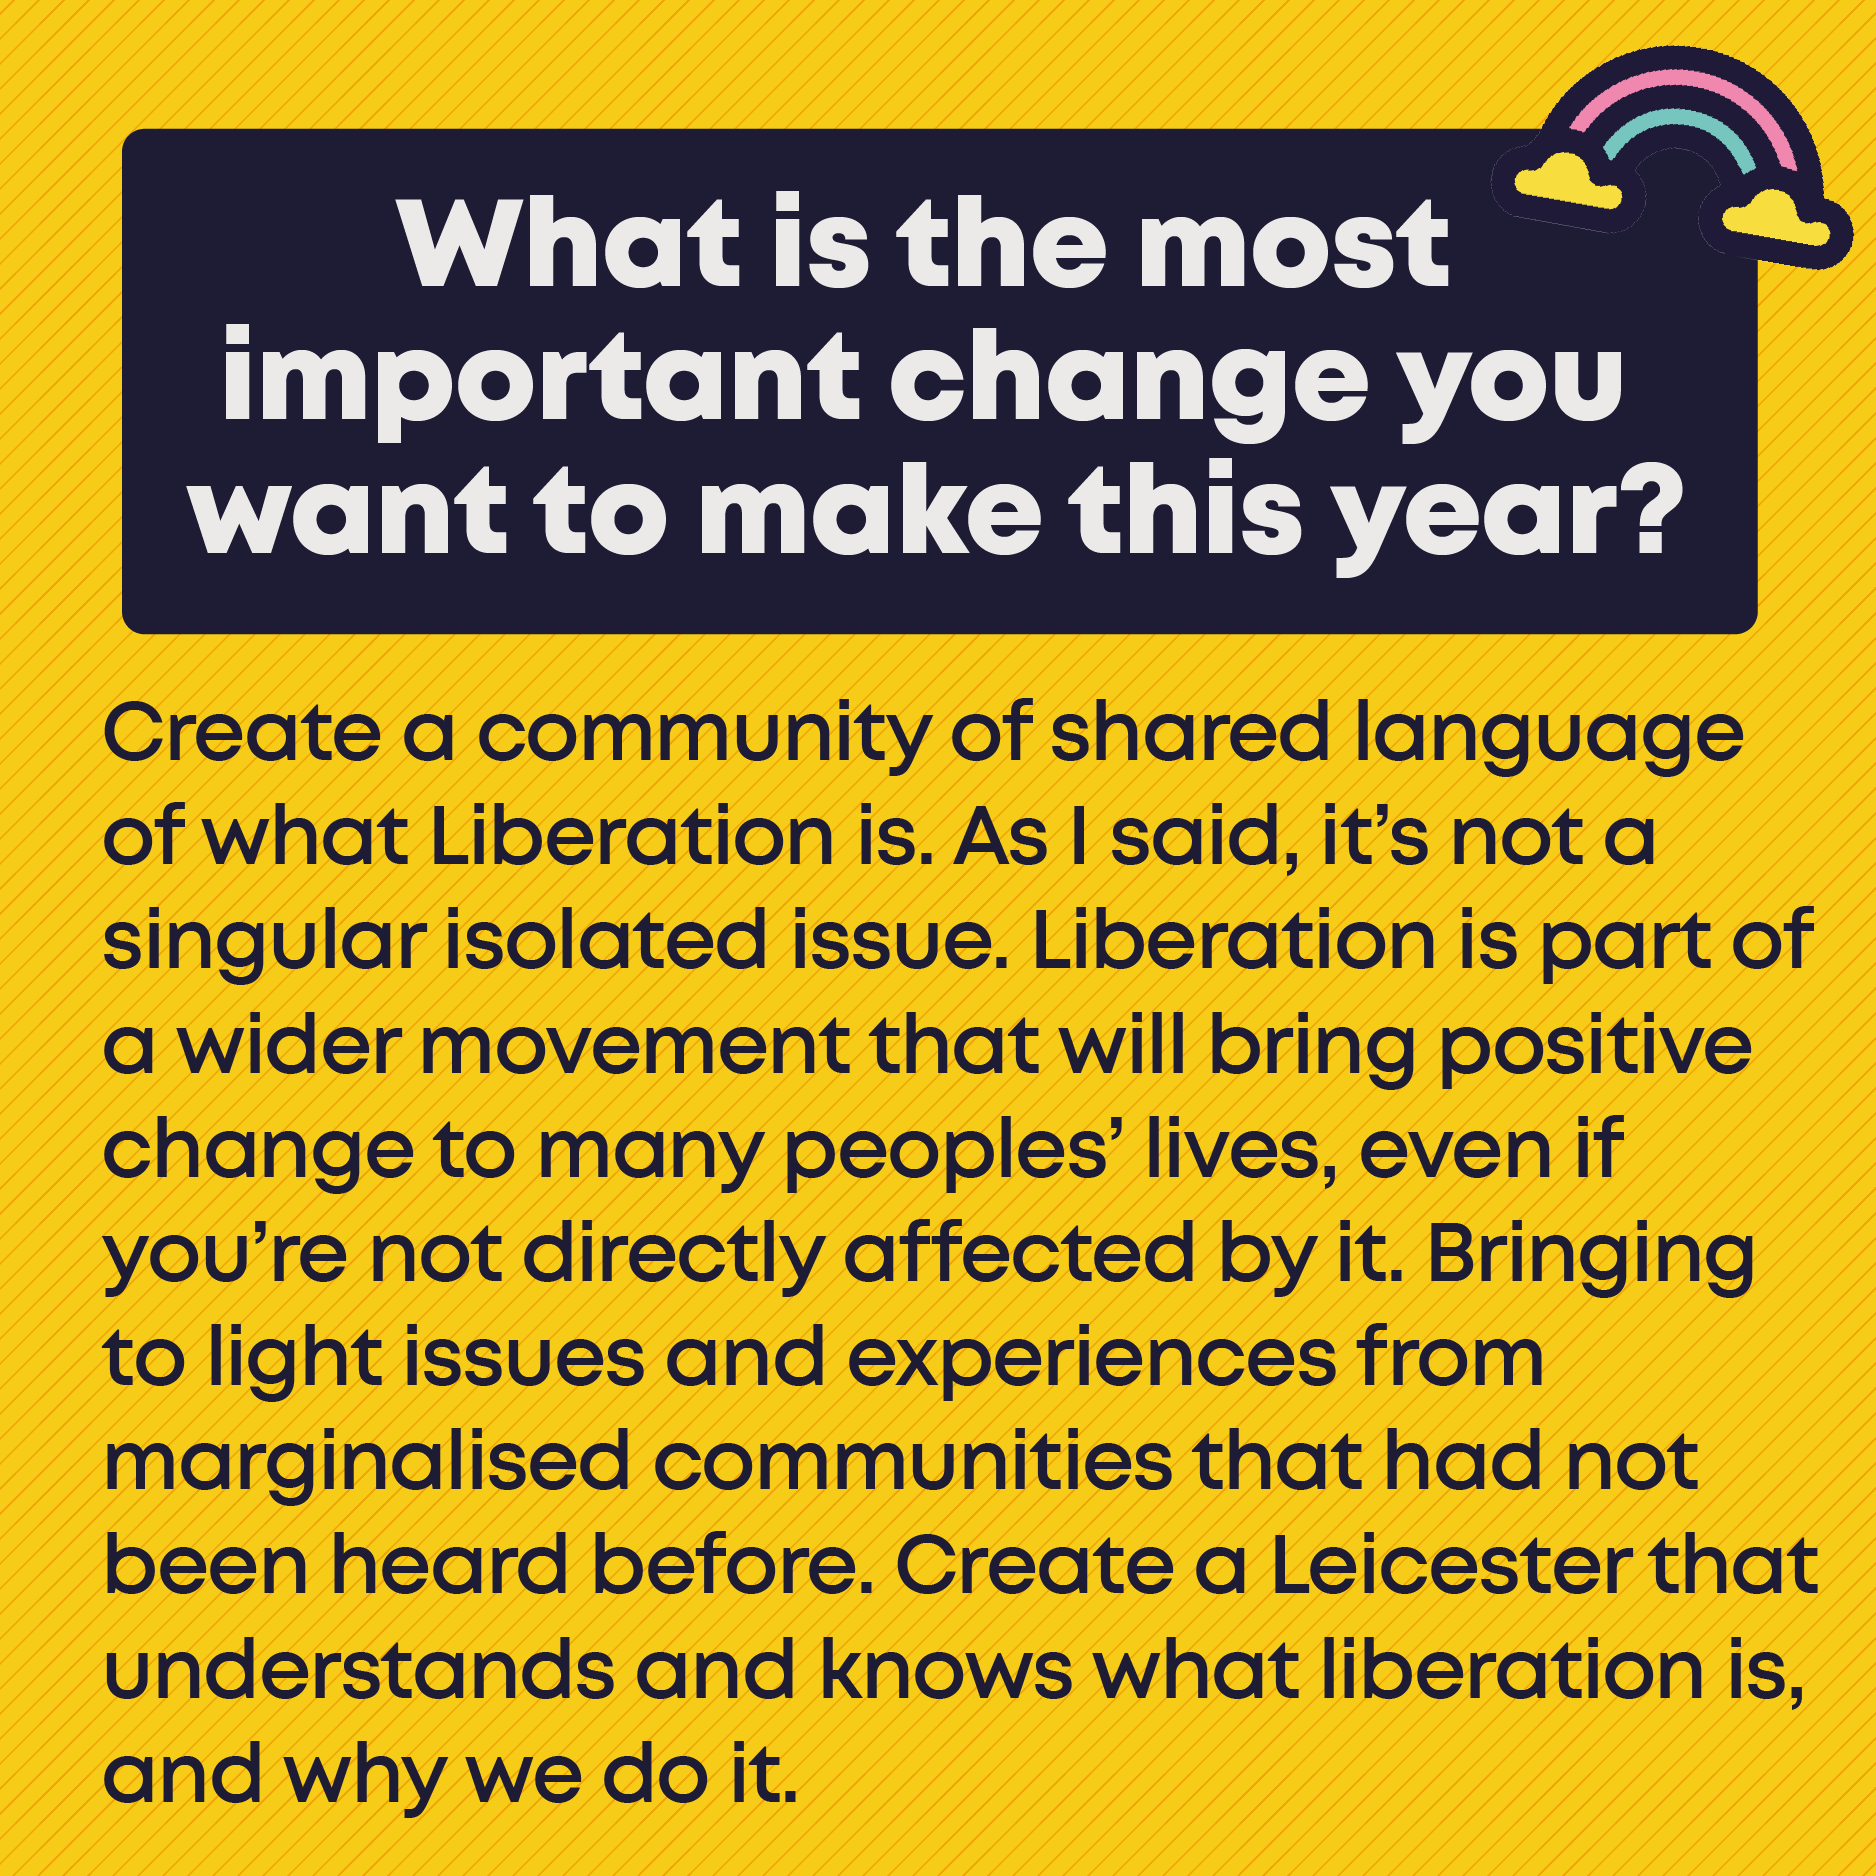 What is the most important change you want to make this year? Create a community of shared language of what Liberation is. As I said, it's not a singular isolated issue. Liberation is part of a wider movement that will bring positive change to many peoples' lives, even if you're not directly affected by it. Bringing to light issues and experiences from marginalised communities that had not been heard before. Create a Leicester that understands and knows what liberation is, and why we do it.